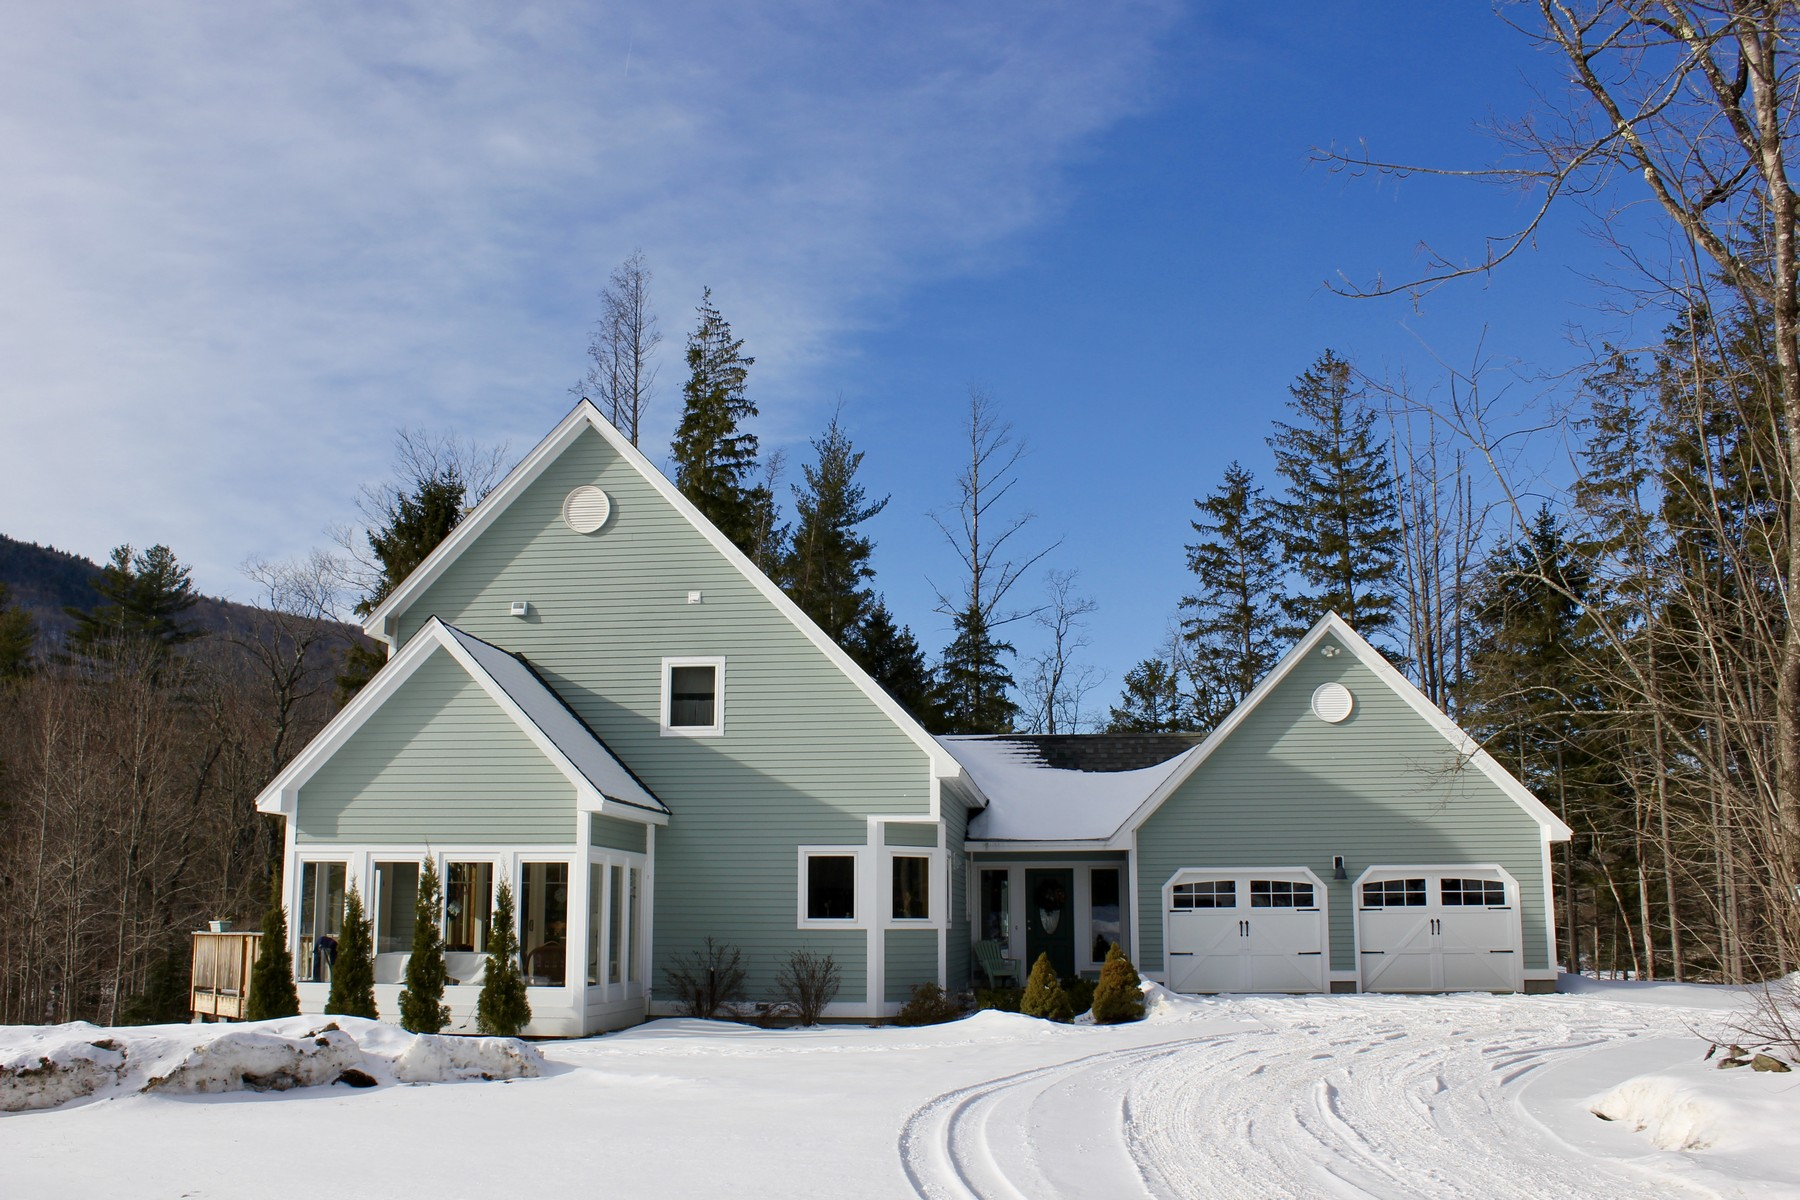 Single Family Home for Sale at Beautiful Mountain Views! 1295 Middletown Rd Andover, Vermont 05143 United States